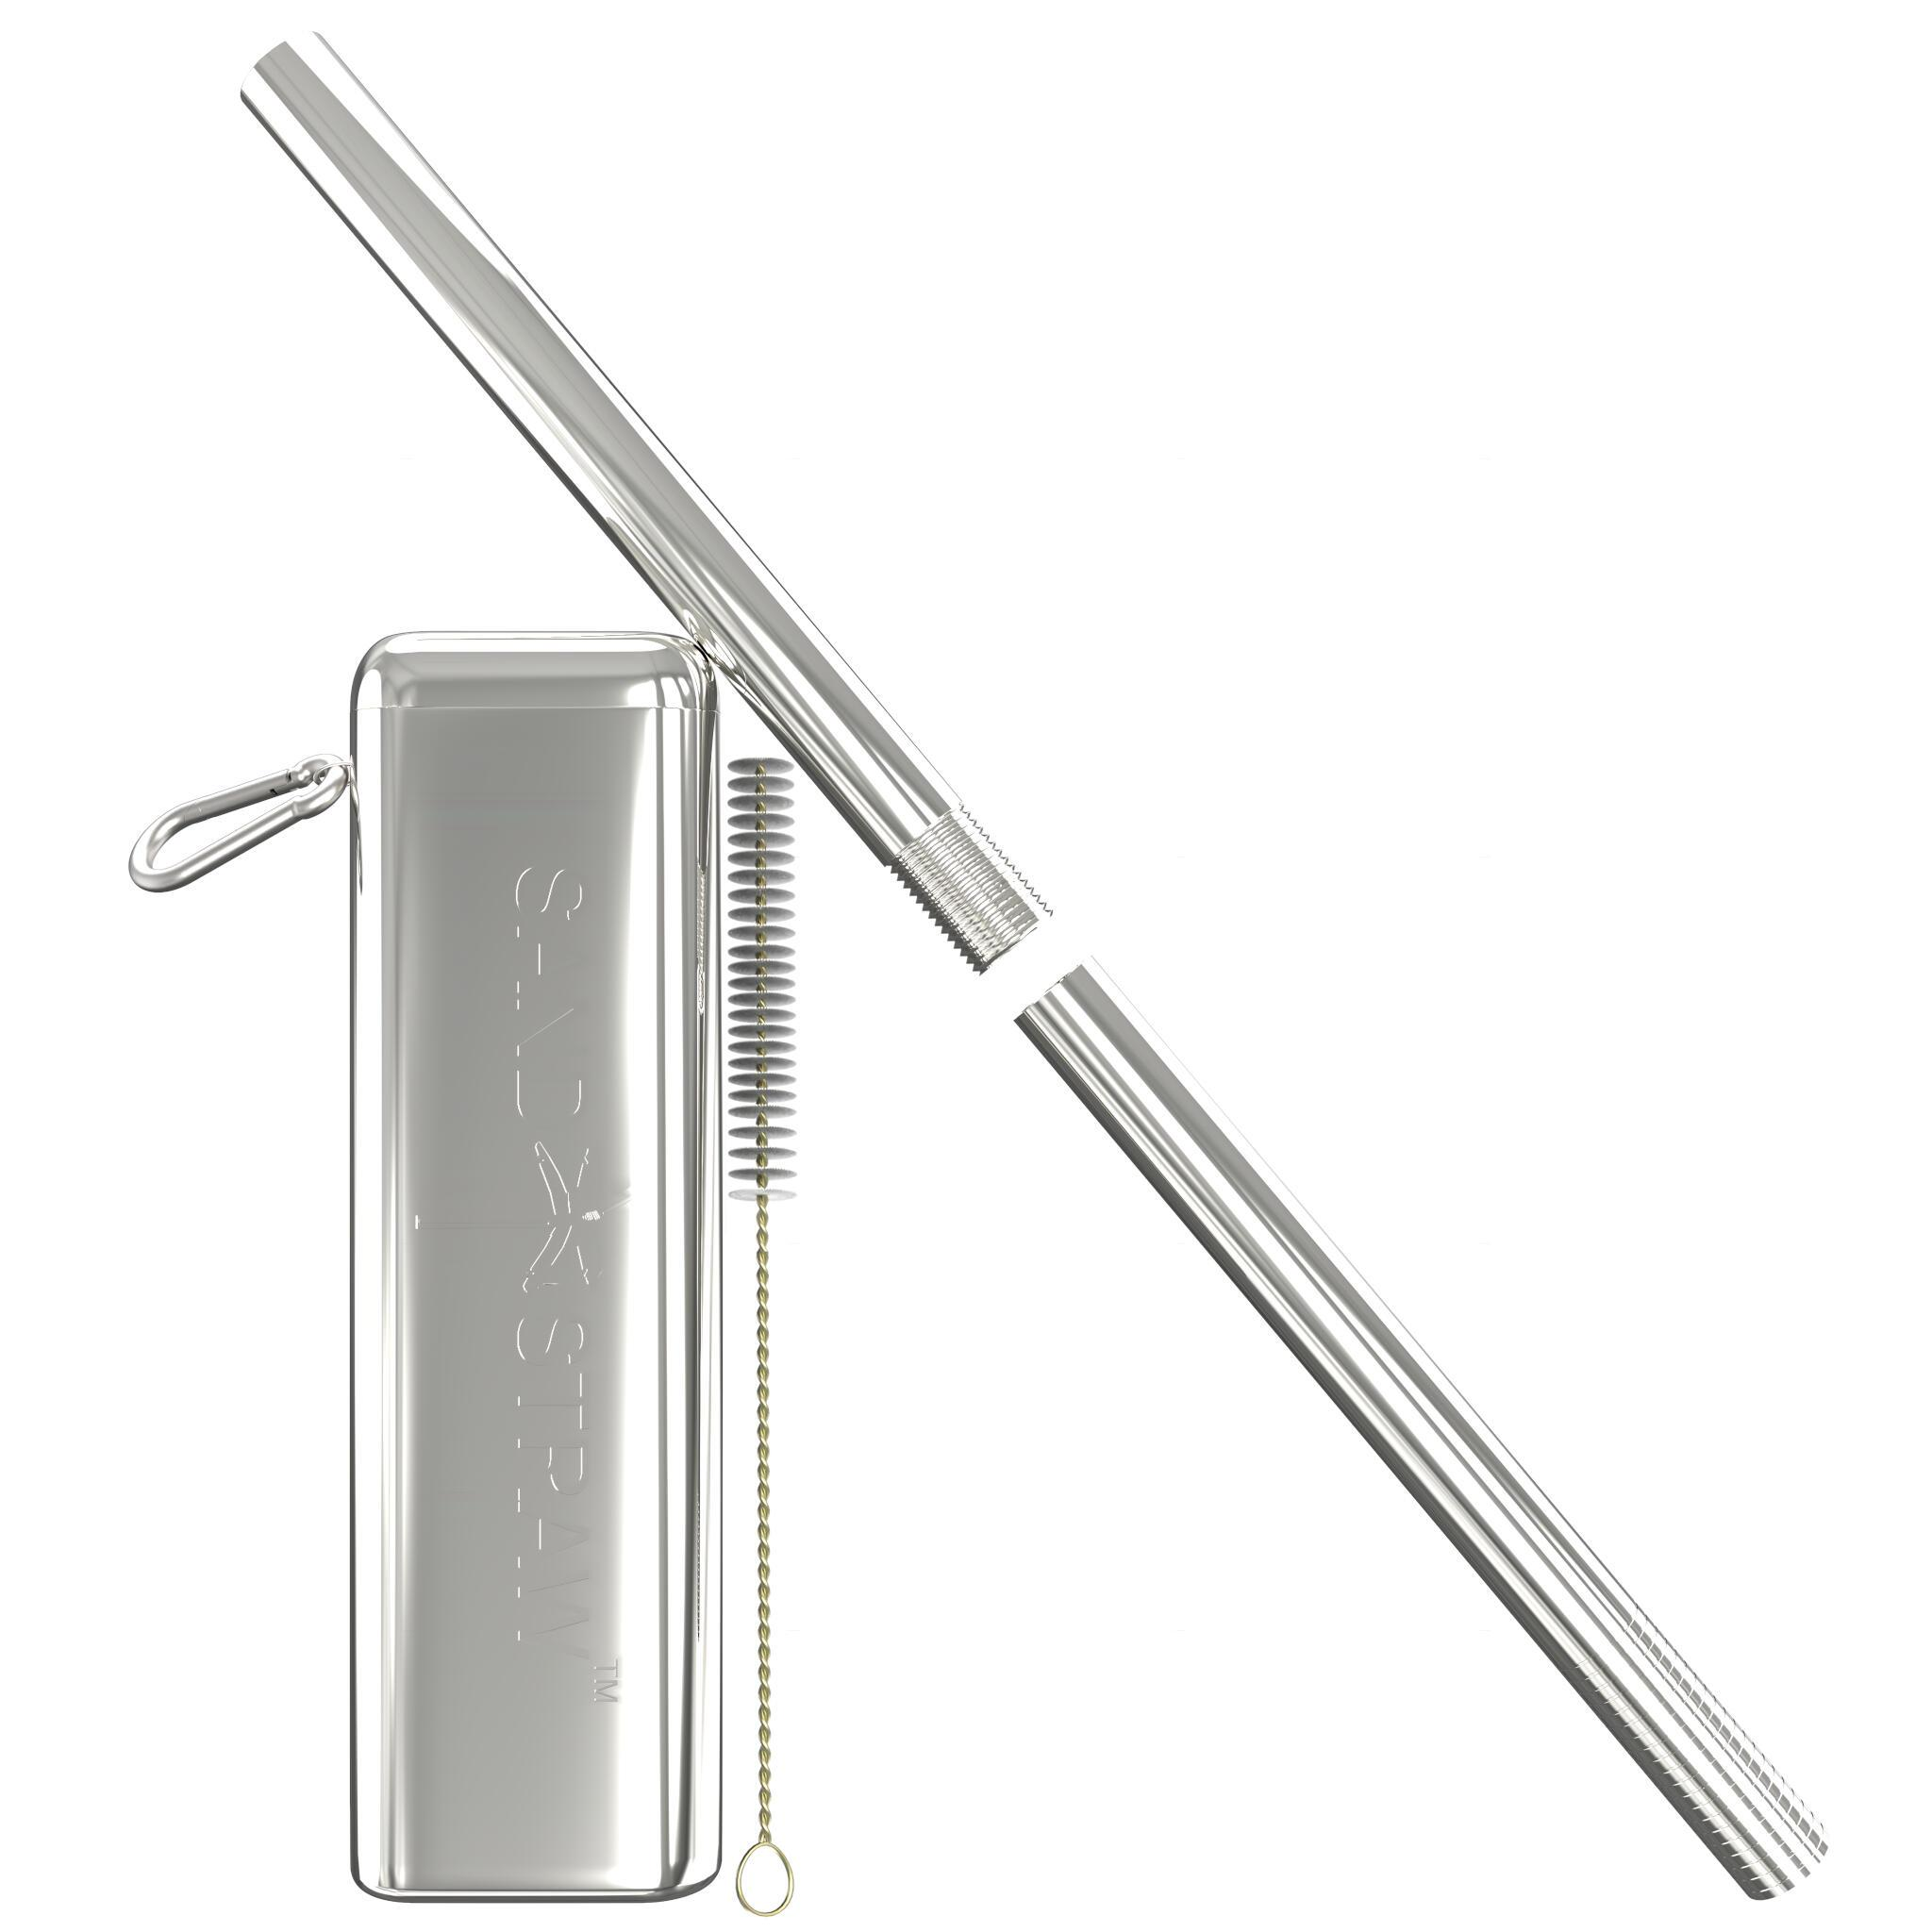 Collapsible Straw Shark/Silver